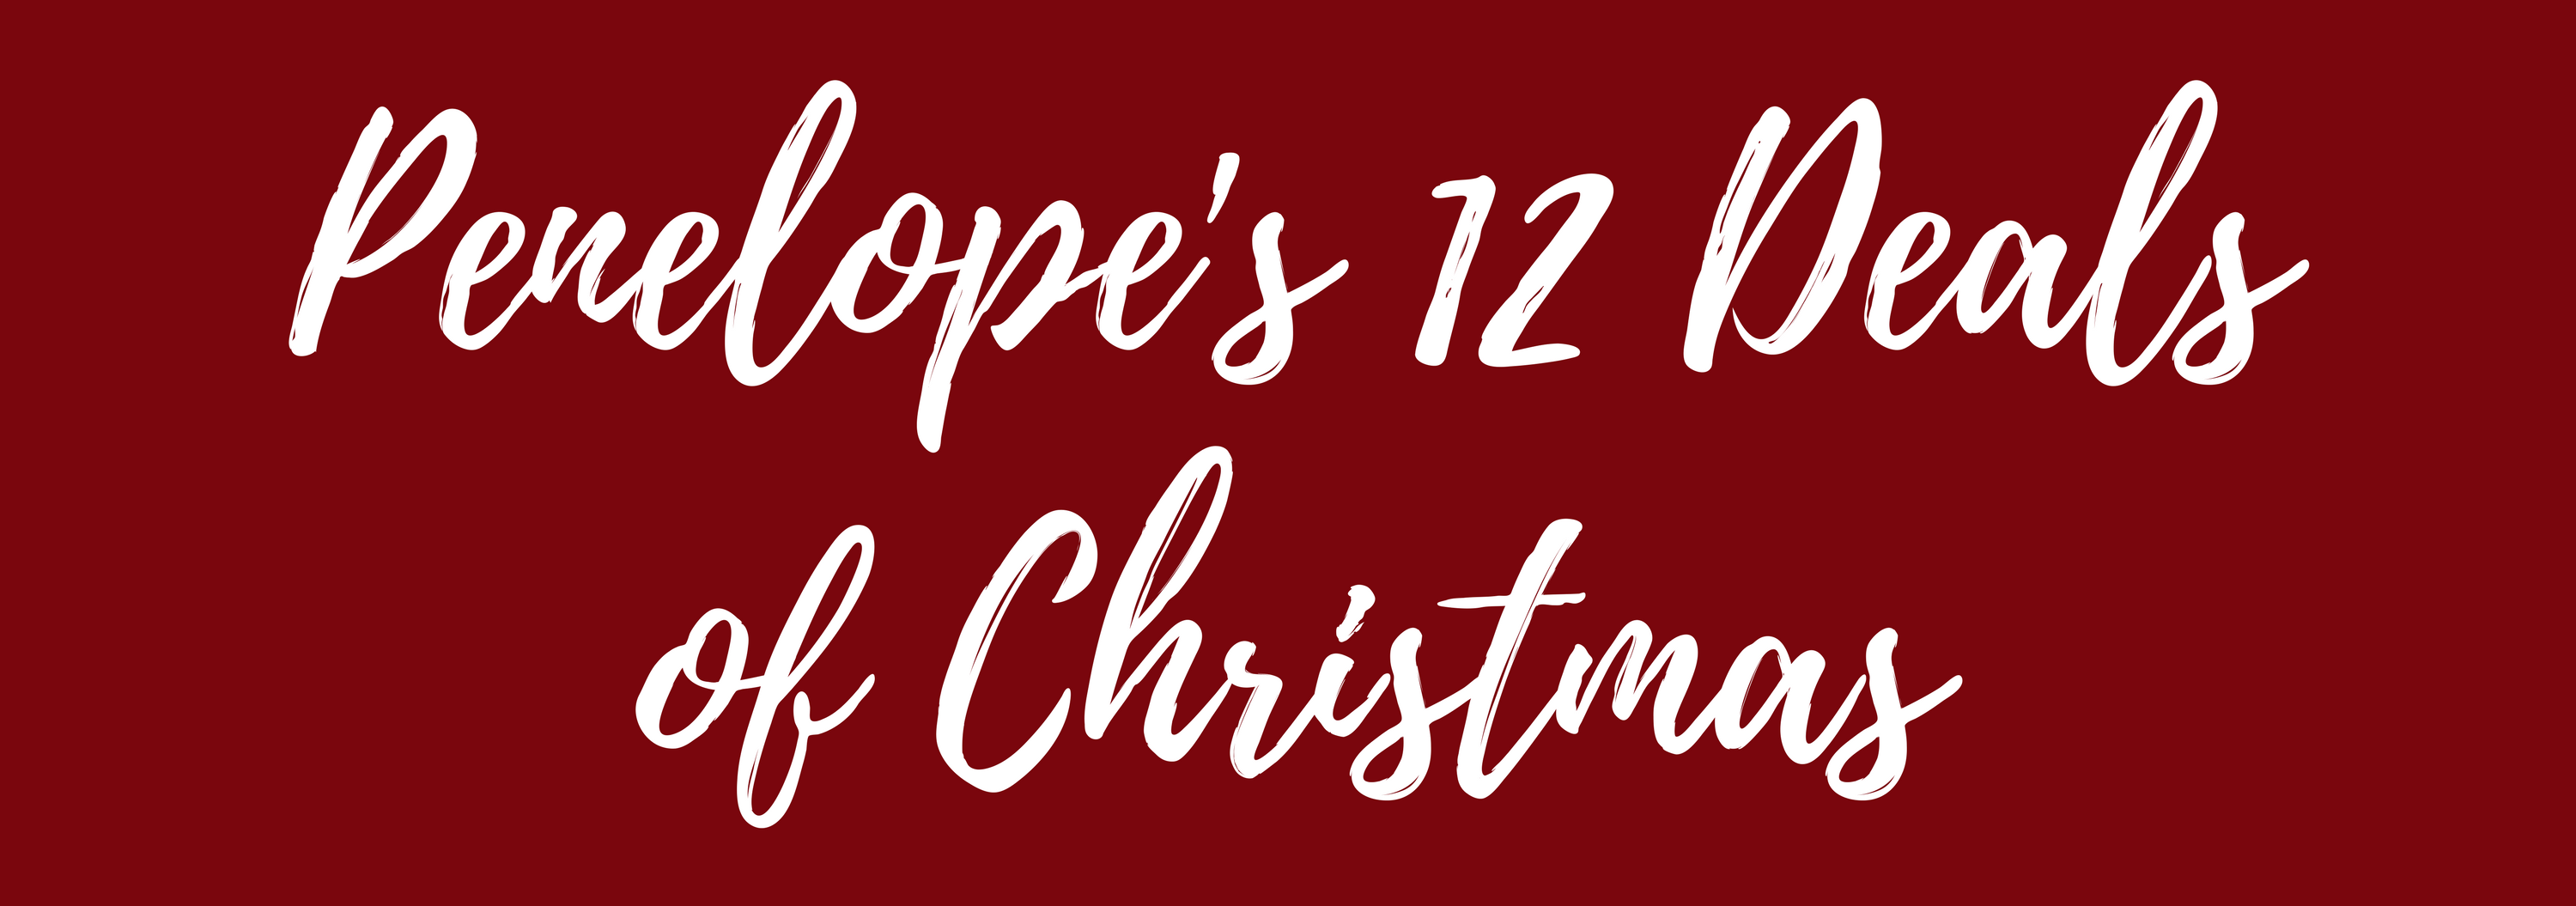 Penelopes 12 Deals of Christmas1